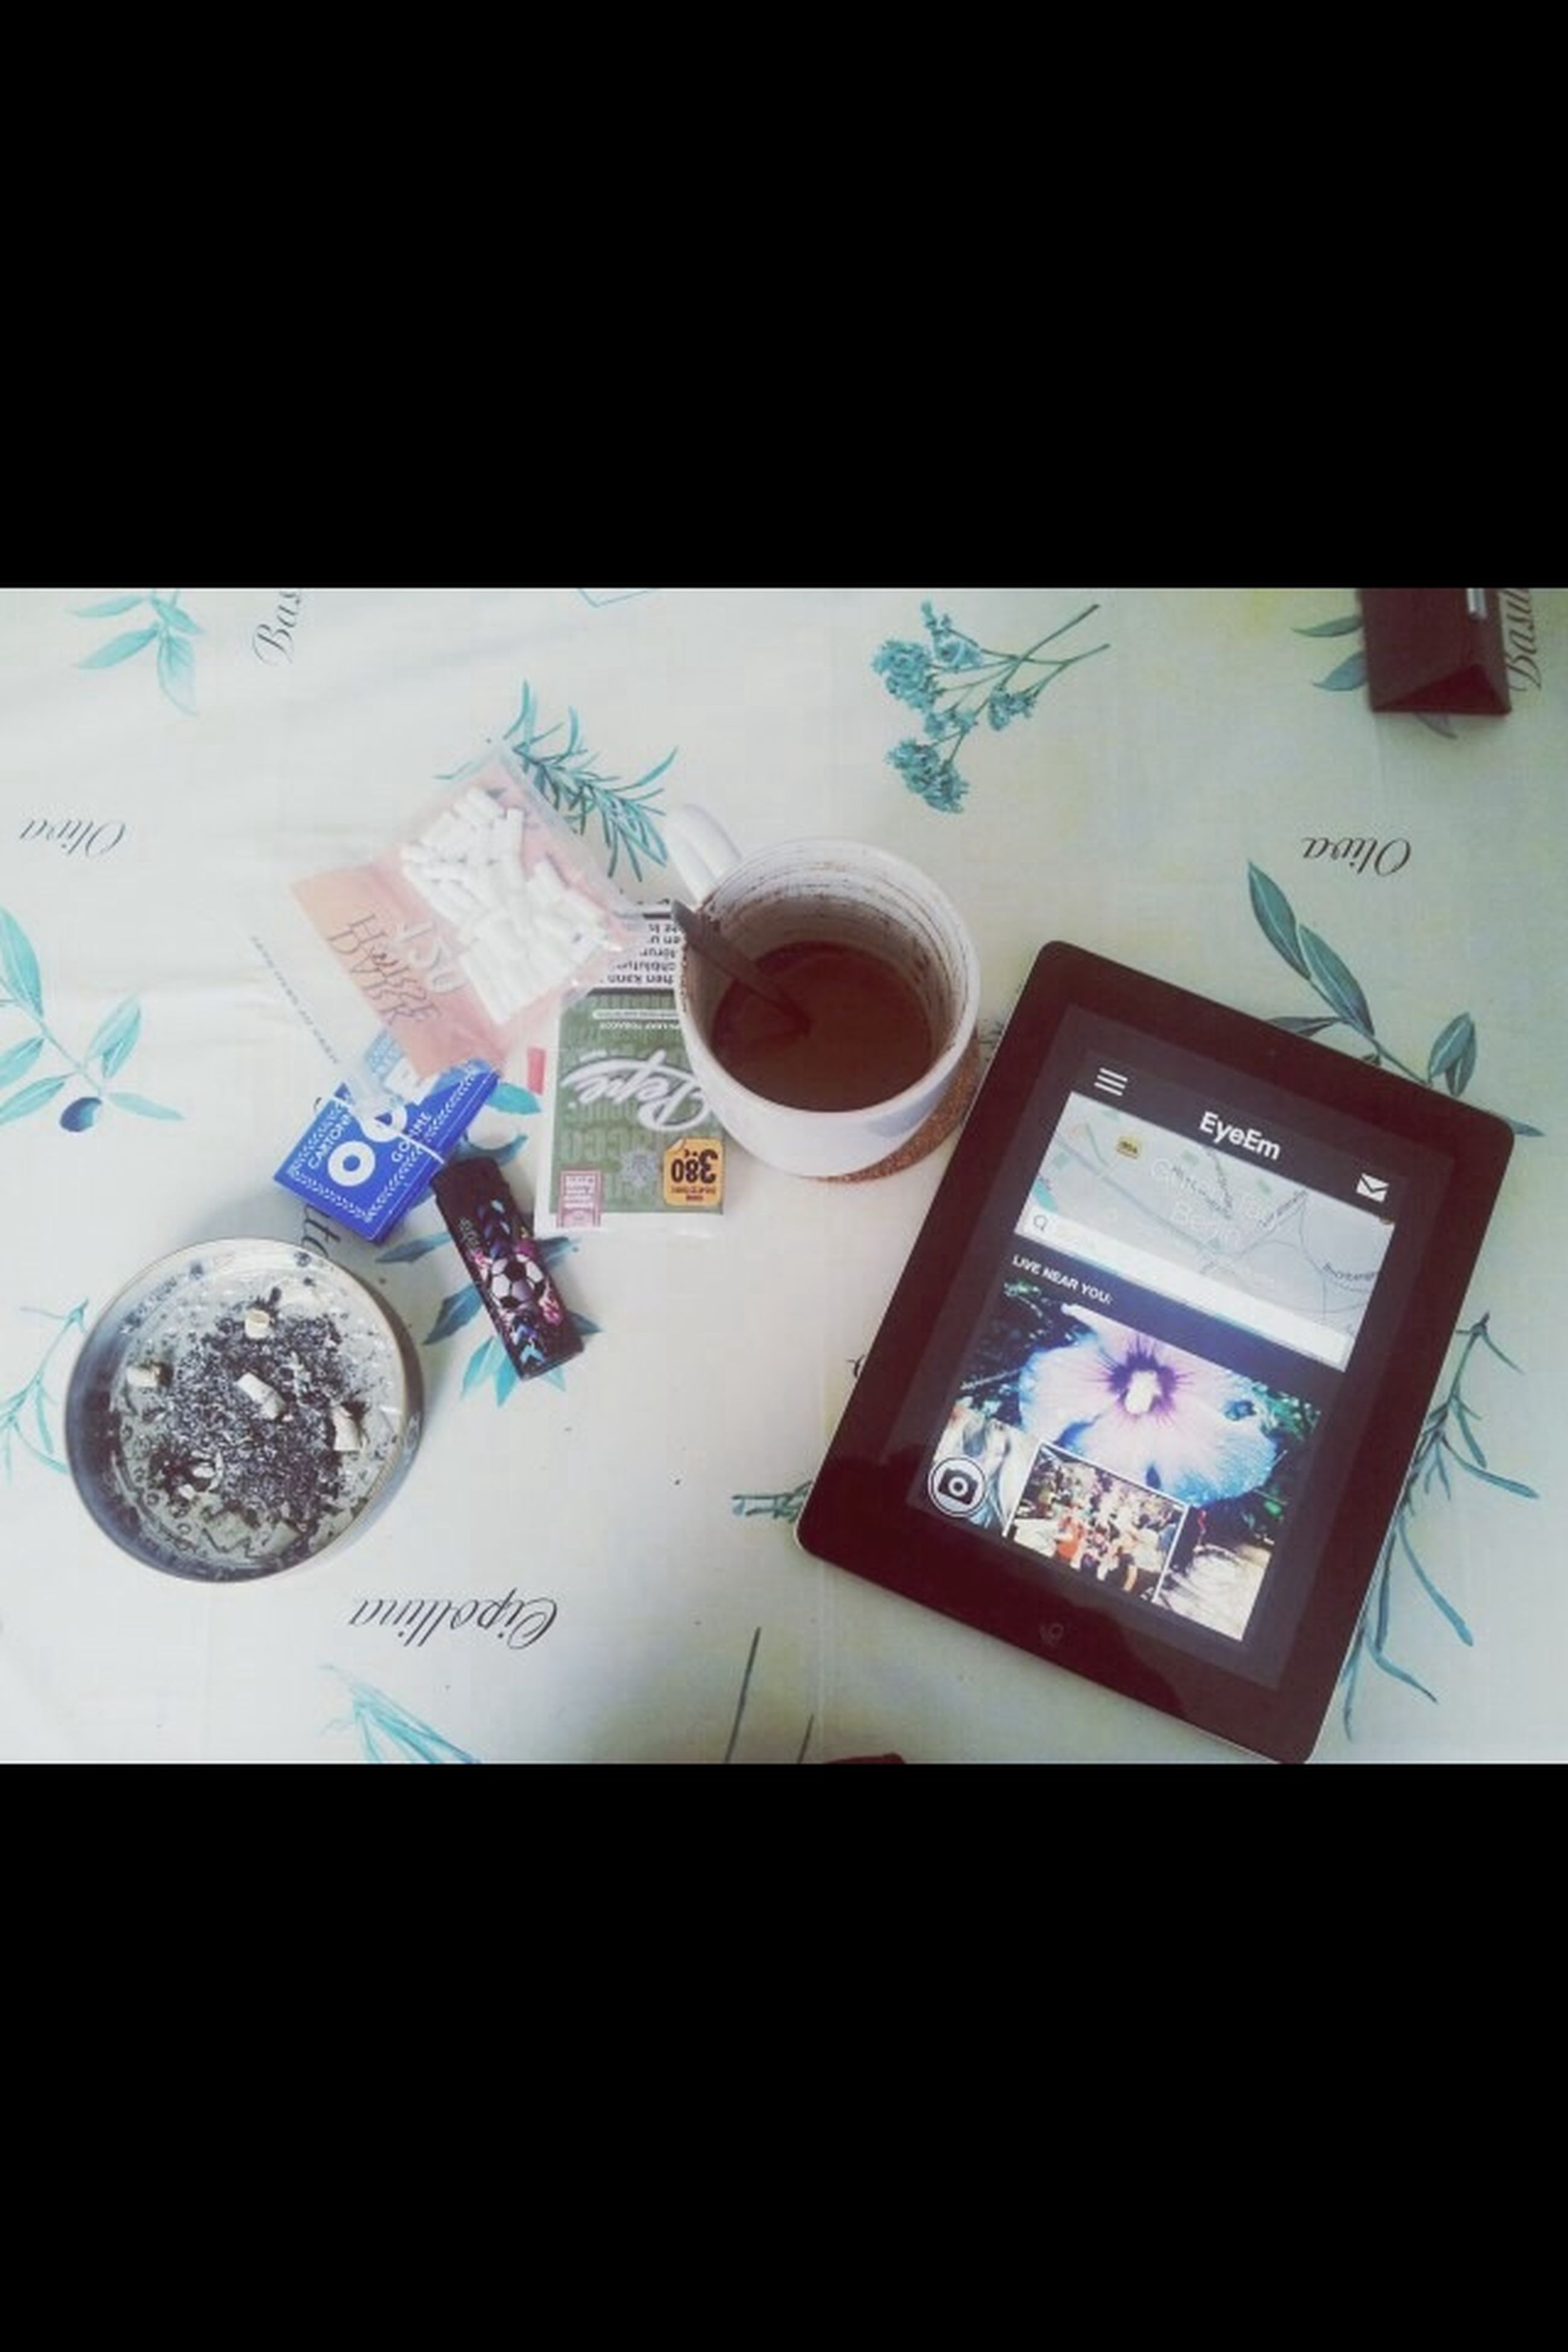 indoors, table, transfer print, communication, auto post production filter, still life, text, coffee cup, high angle view, western script, technology, drink, close-up, cup, food and drink, wireless technology, no people, paper, refreshment, coffee - drink